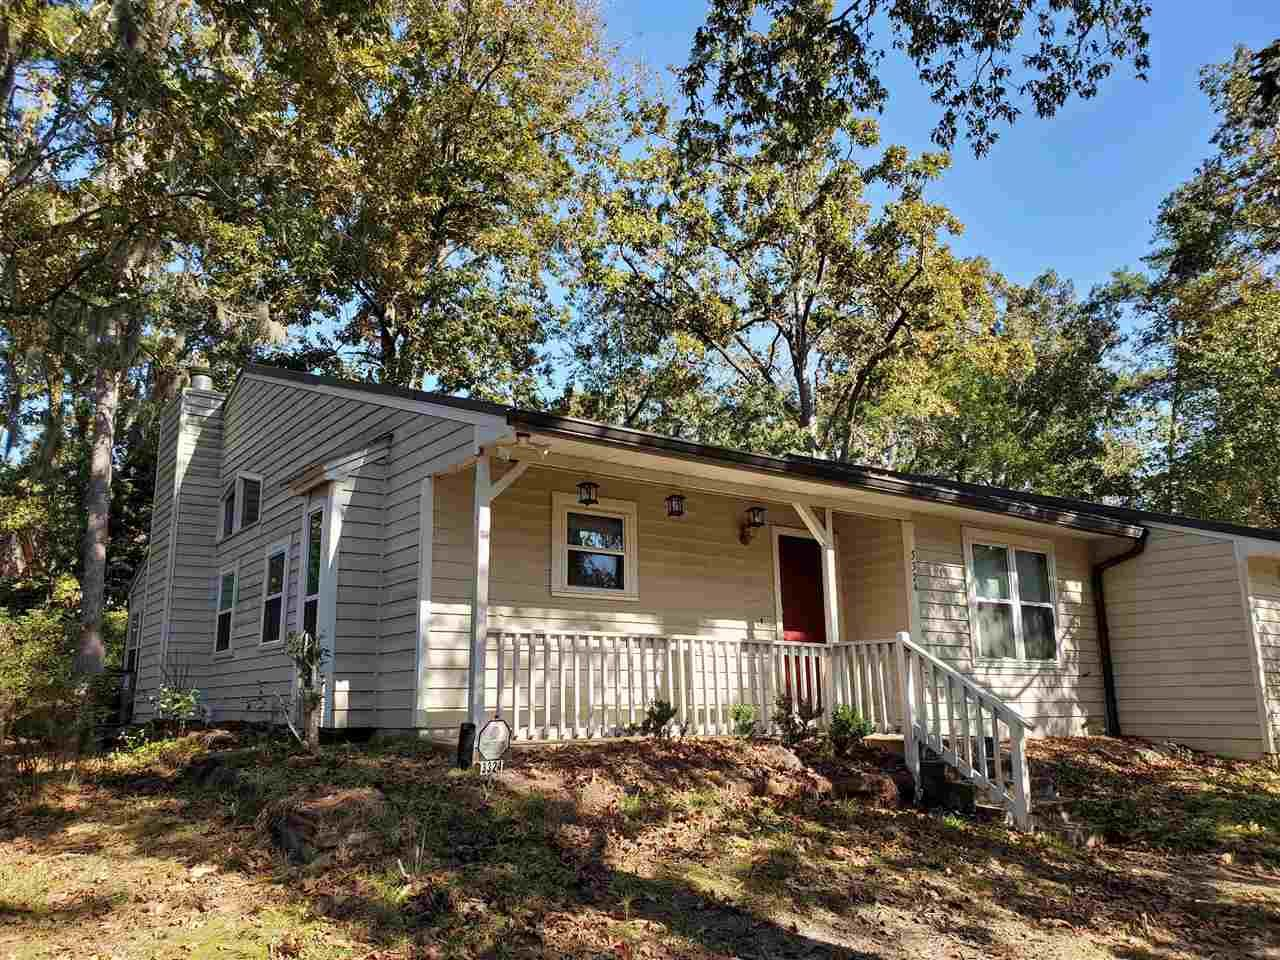 Photo for 3324 Hickory Holw, TALLAHASSEE, FL 32308 (MLS # 313130)